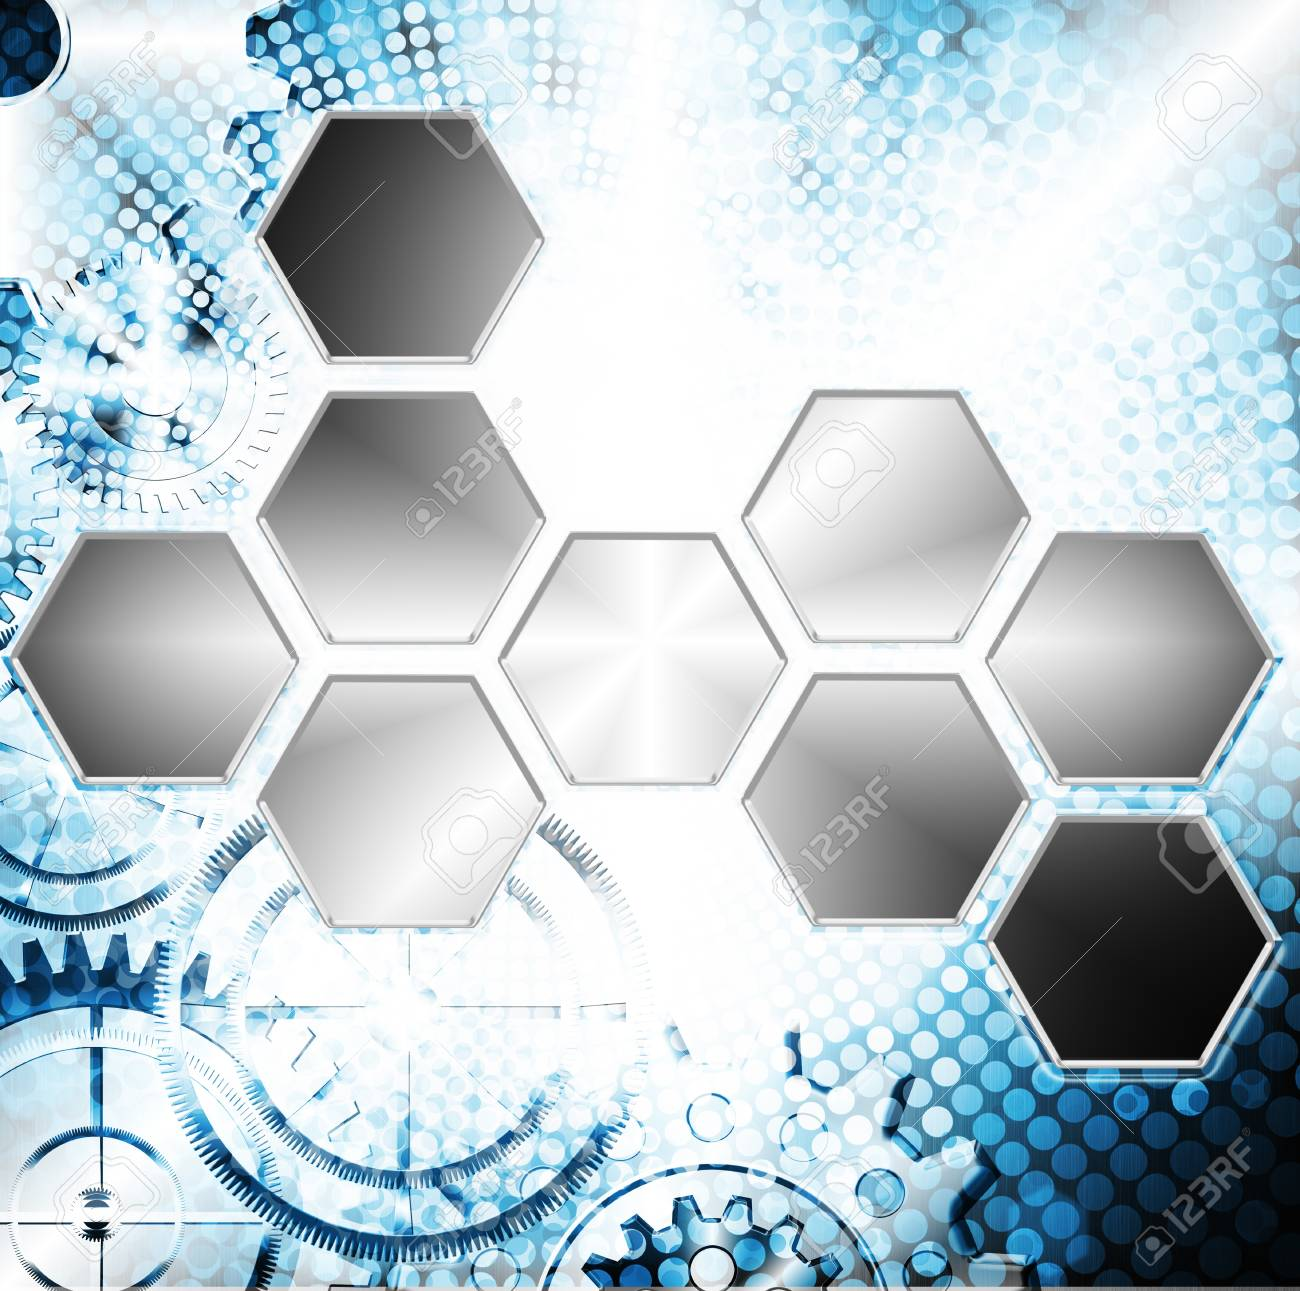 Technology And Industrial Background With Gear Wheel Stock Photo Circuit Board Graphic By Setsiri Silapasuwanchai